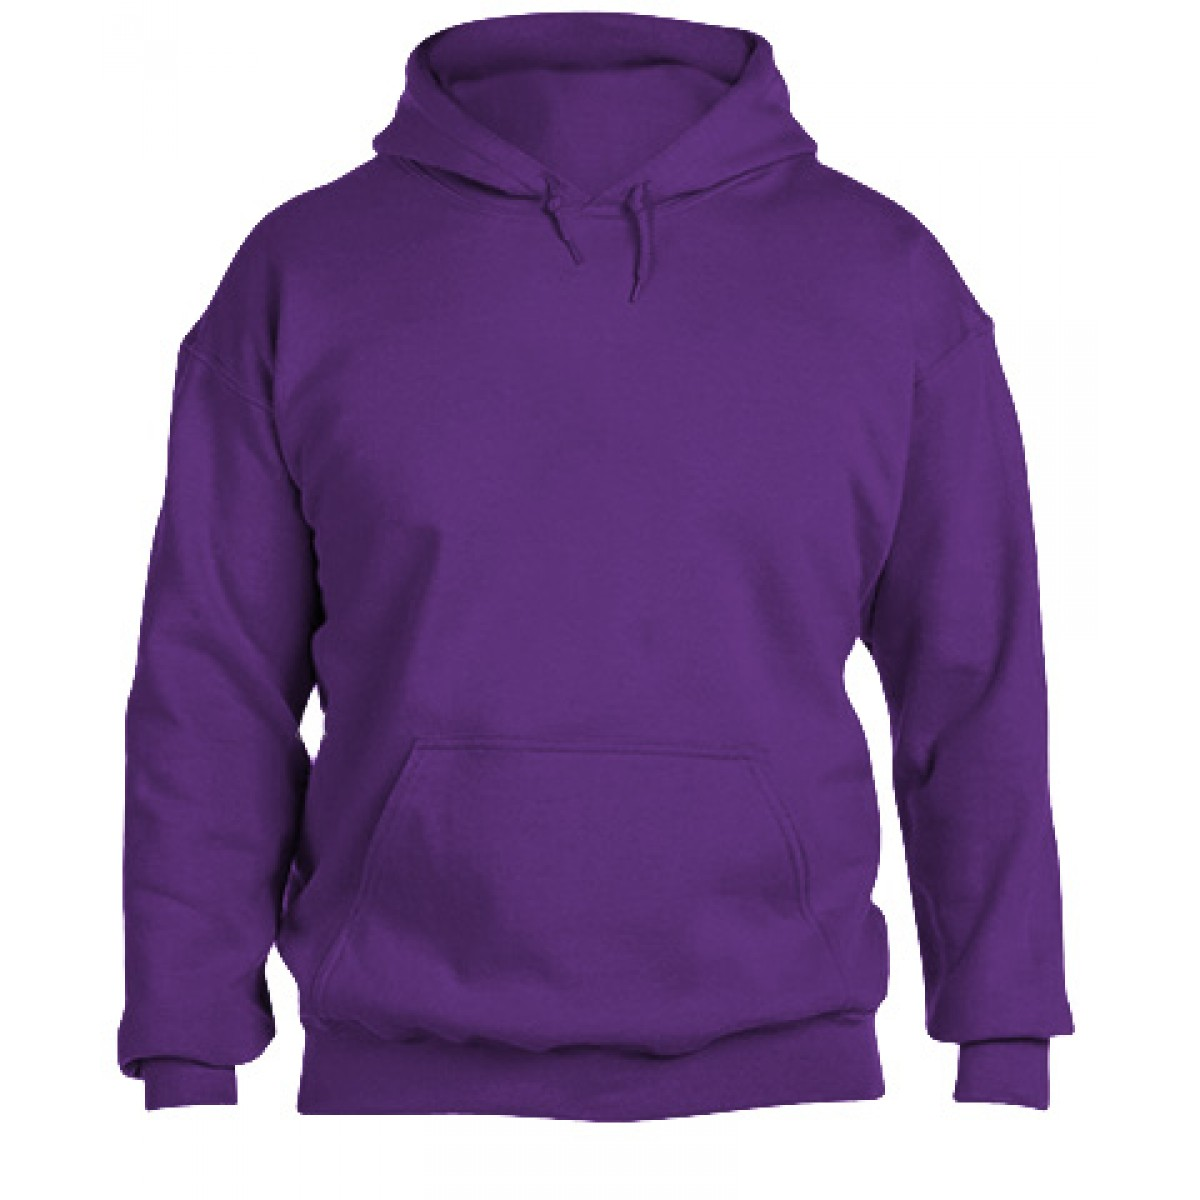 Hooded Sweatshirt 50/50 Heavy Blend -Purple-3XL